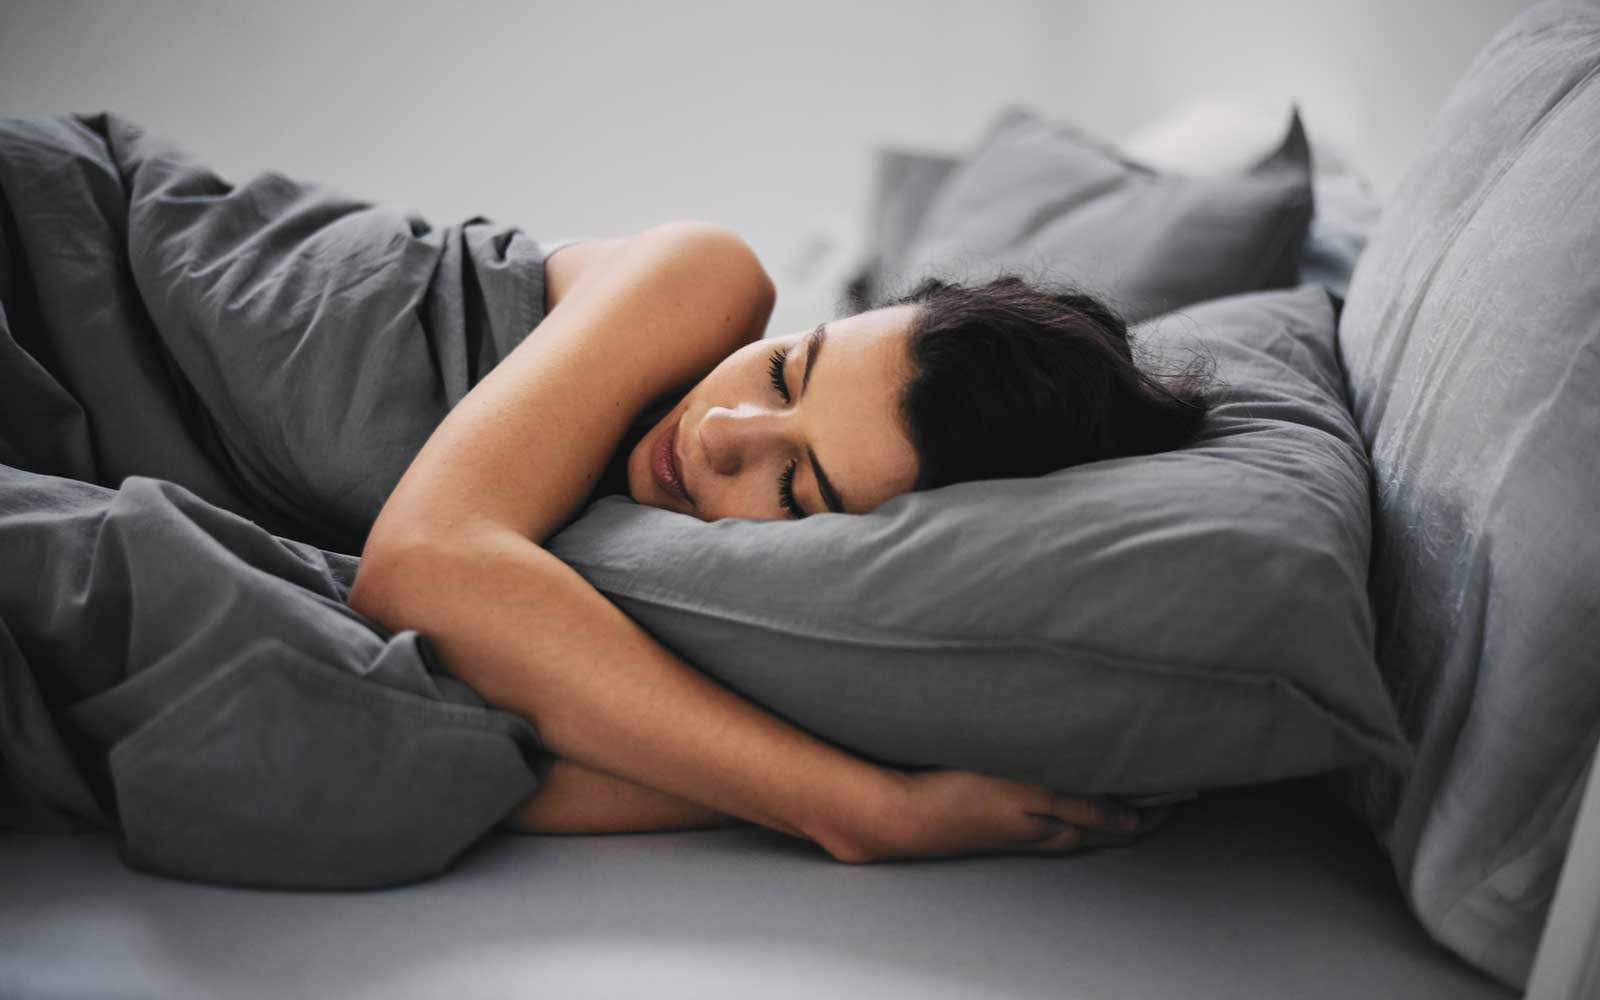 Girl Lying Down In Bed And Sleeping